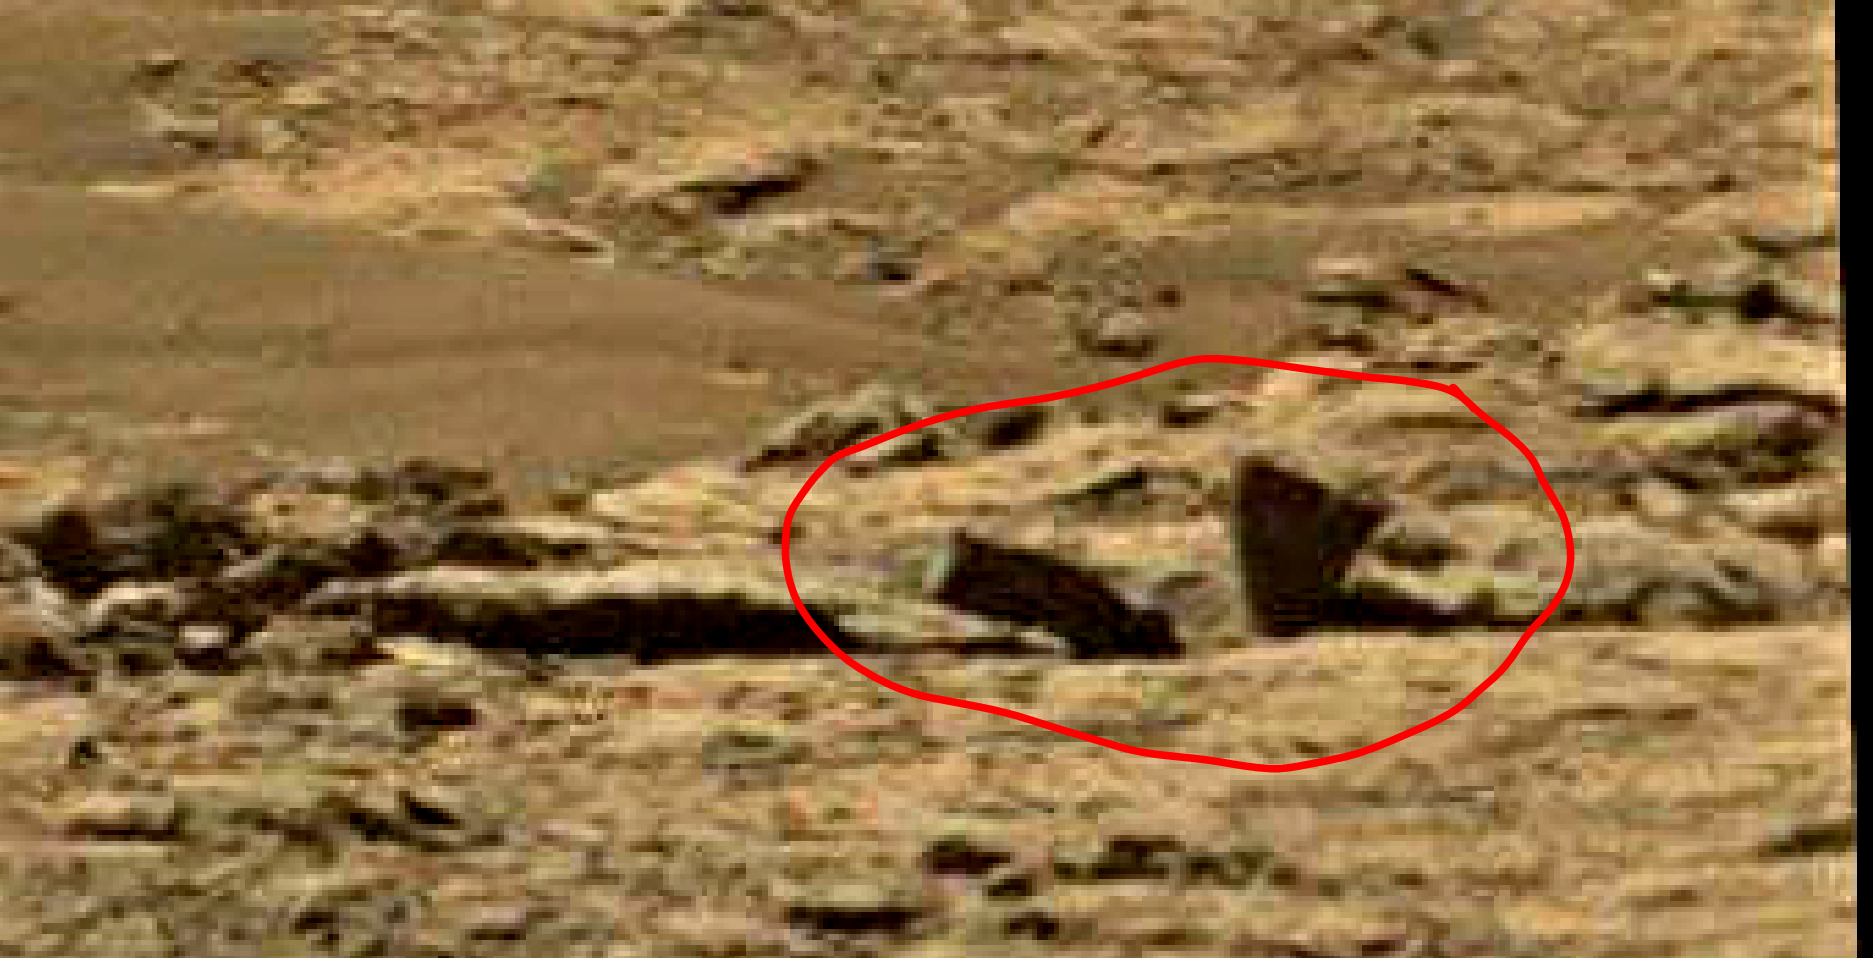 mars sol 1434 anomaly artifacts 2a was life on mars